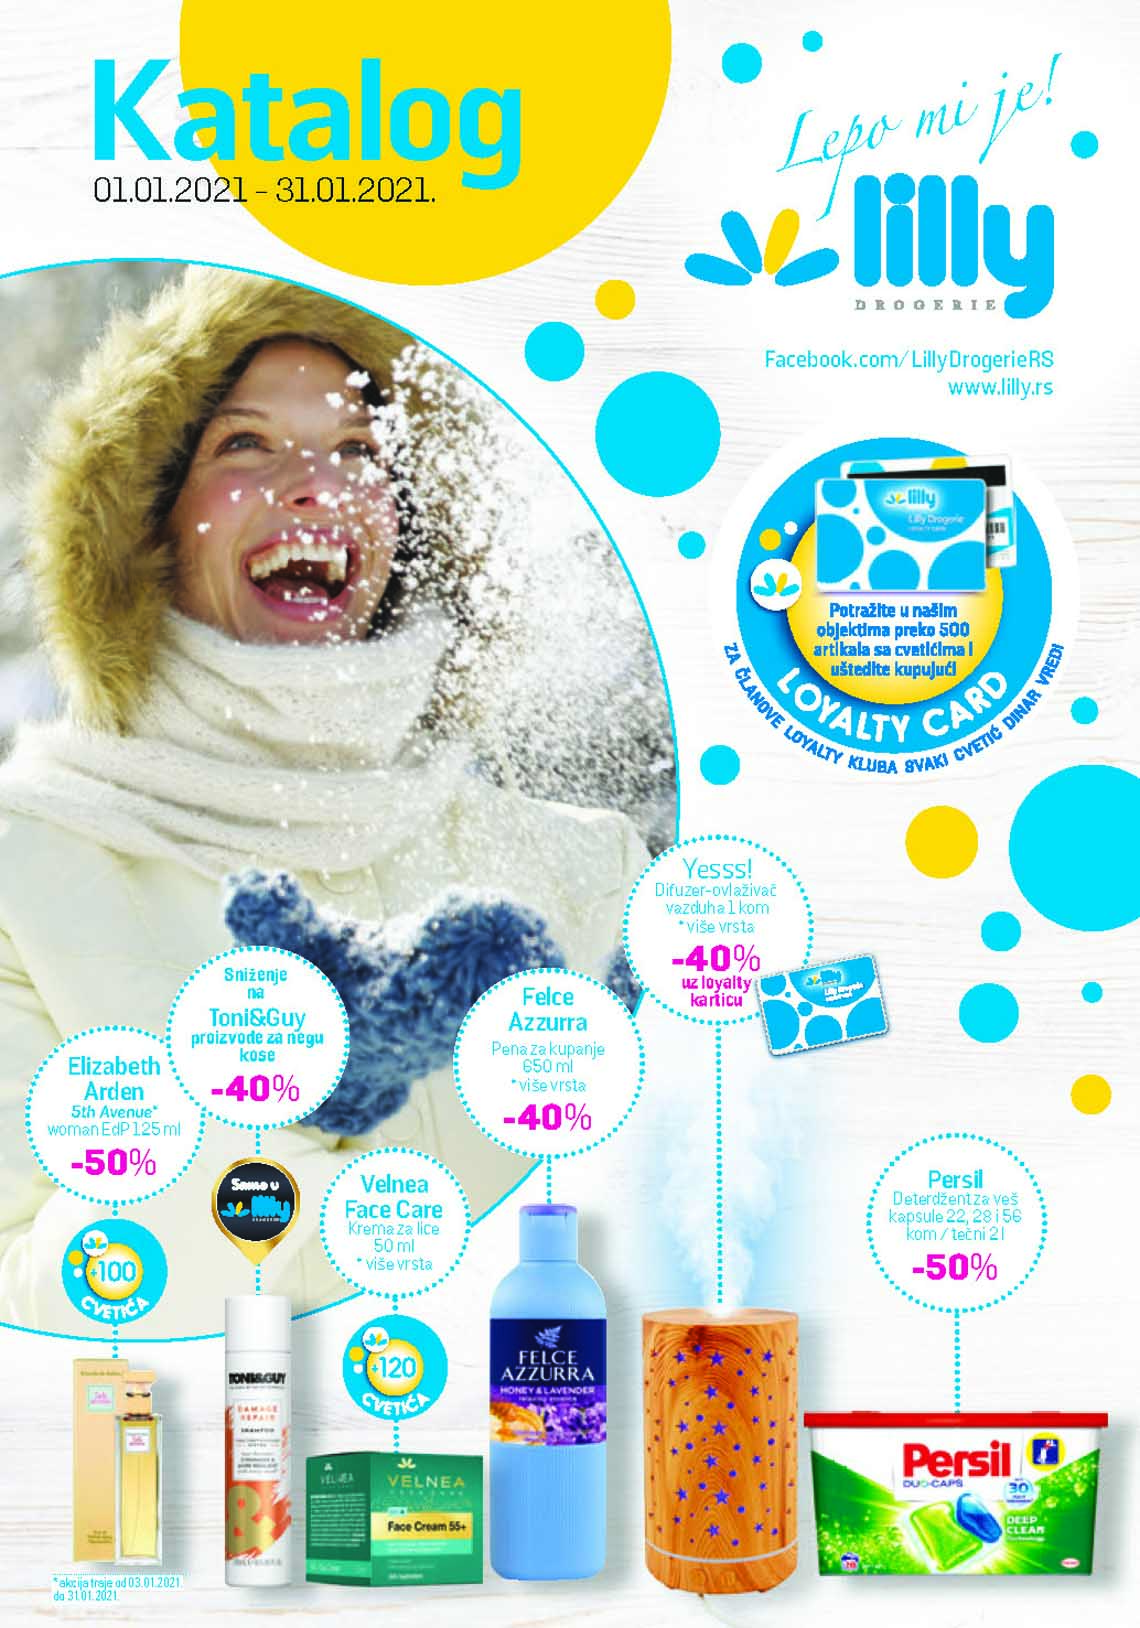 LILLY DROGERIE Katalog - Super akcija do 31.01.2021.